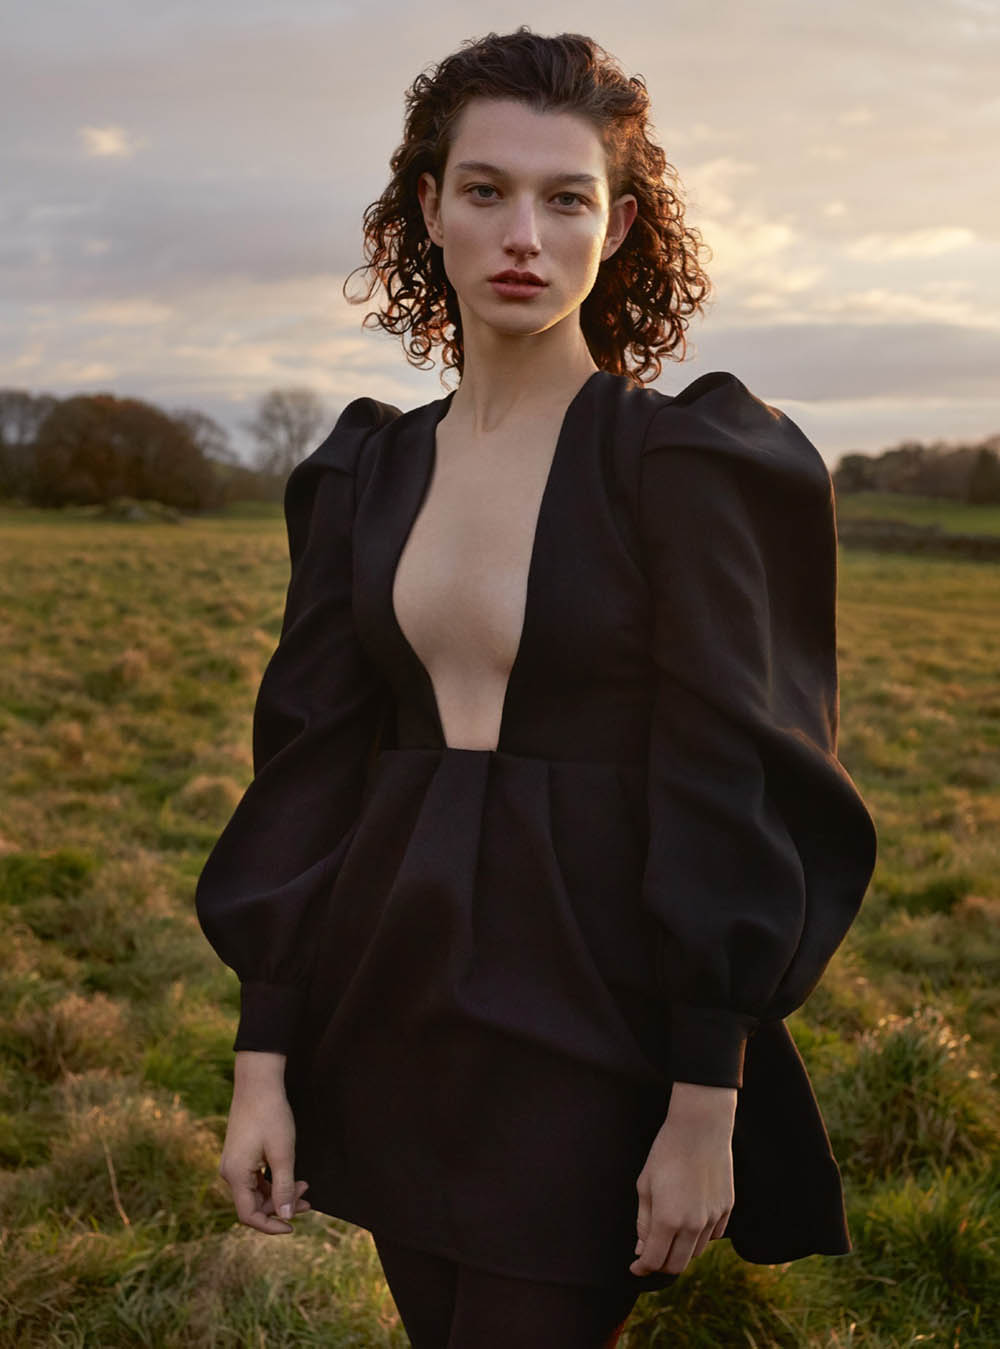 McKenna Hellam by Agata Pospieszynska for Harper's Bazaar UK March 2020